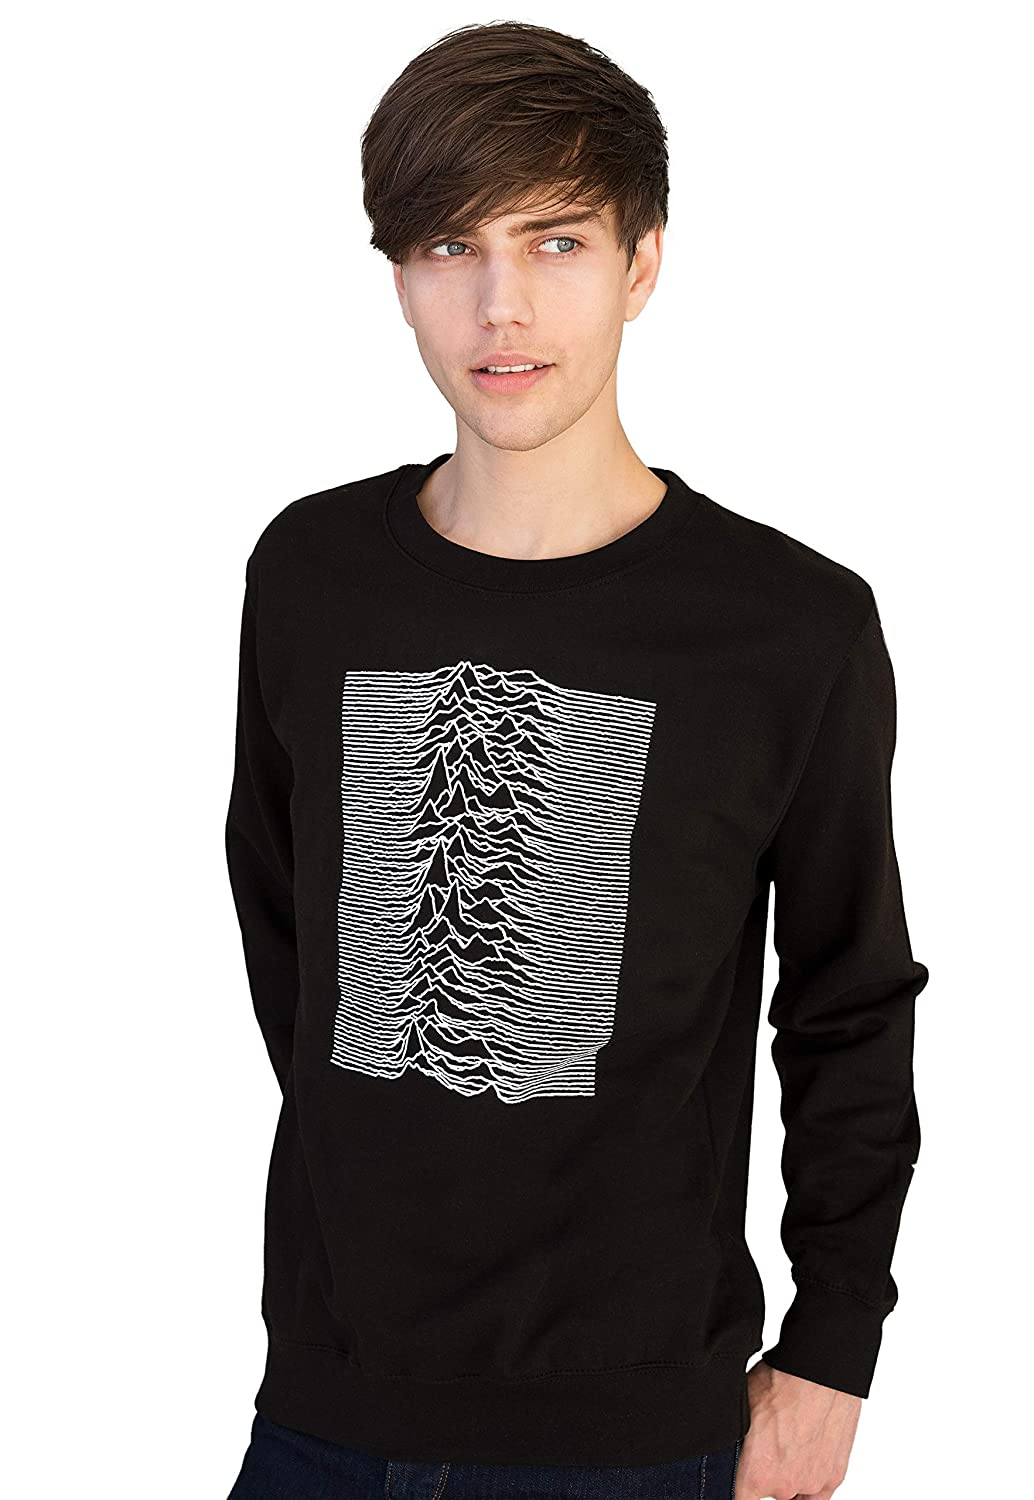 Pulsar Used by Joy Division for the Unknown Pleasures - Sweatshirt / Jumper